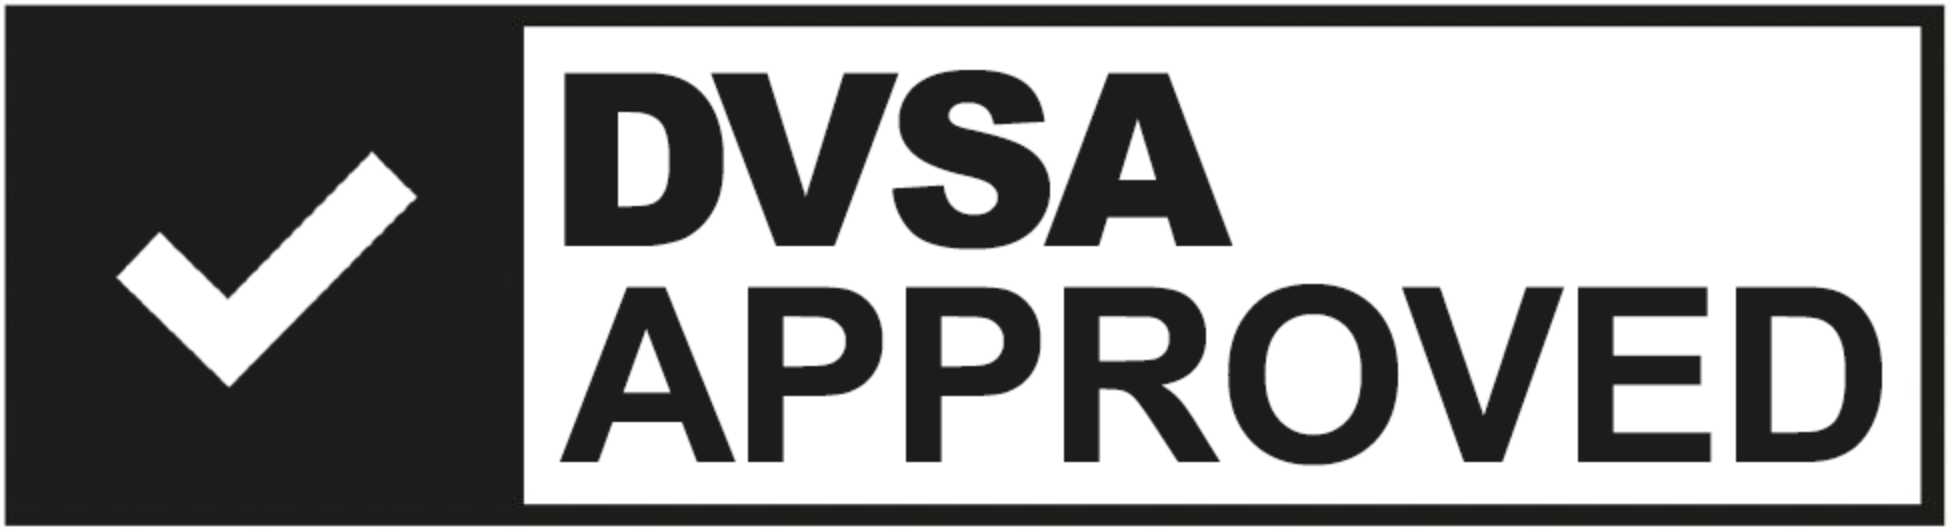 DVSA approved